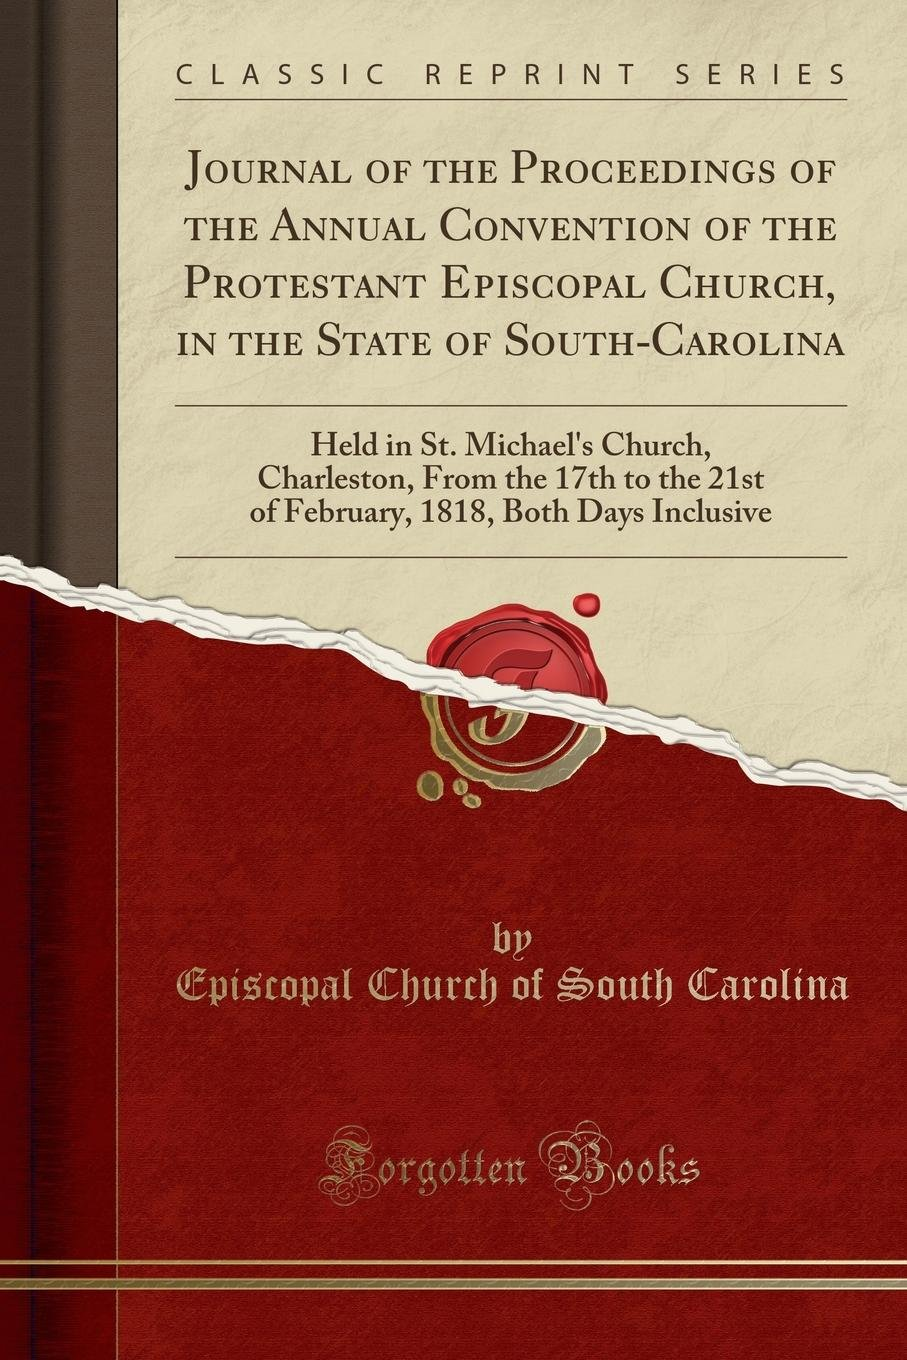 Journal of the Proceedings of the Annual Convention of the Protestant Episcopal Church, in the State of South-Carolina: Held in St. Michael's Church, ... 1818, Both Days Inclusive (Classic Reprint) PDF